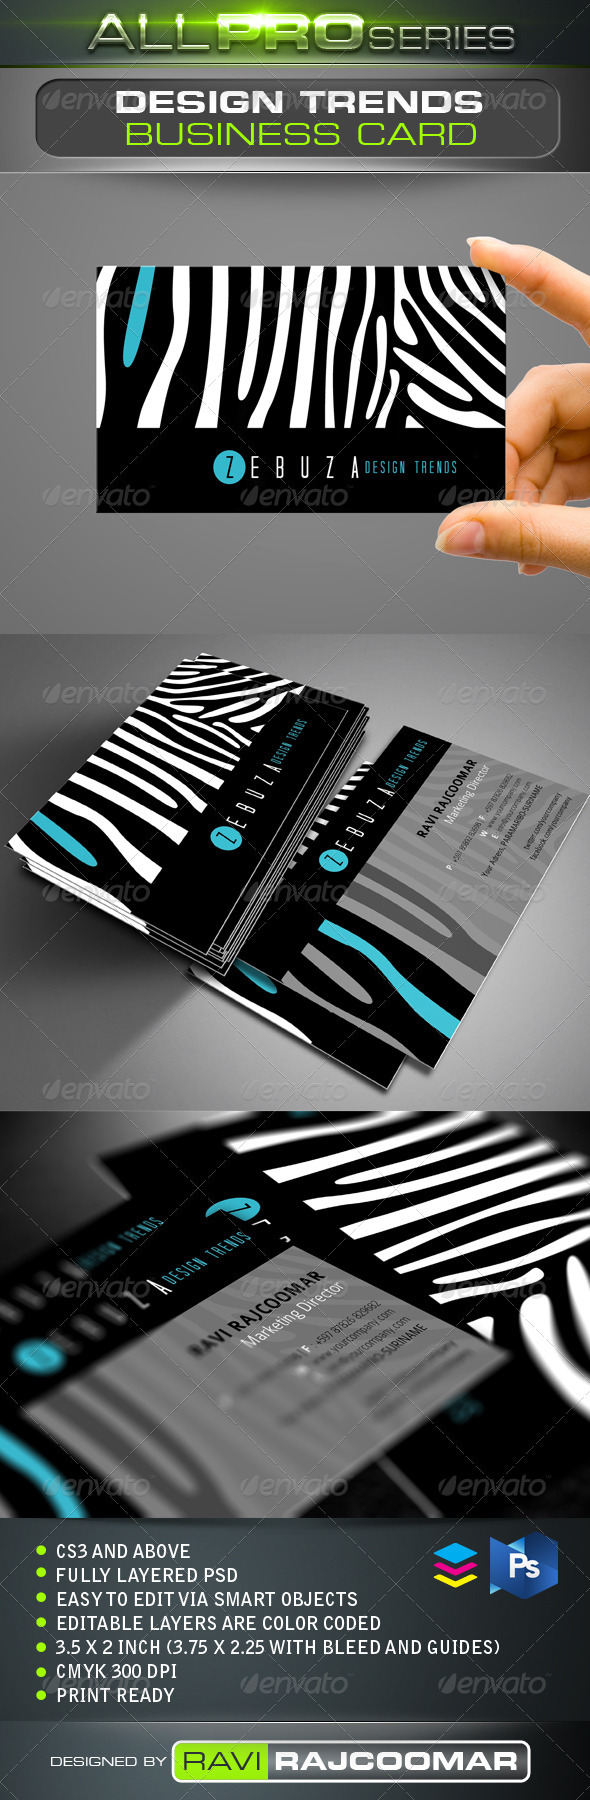 Design Trends Business Card